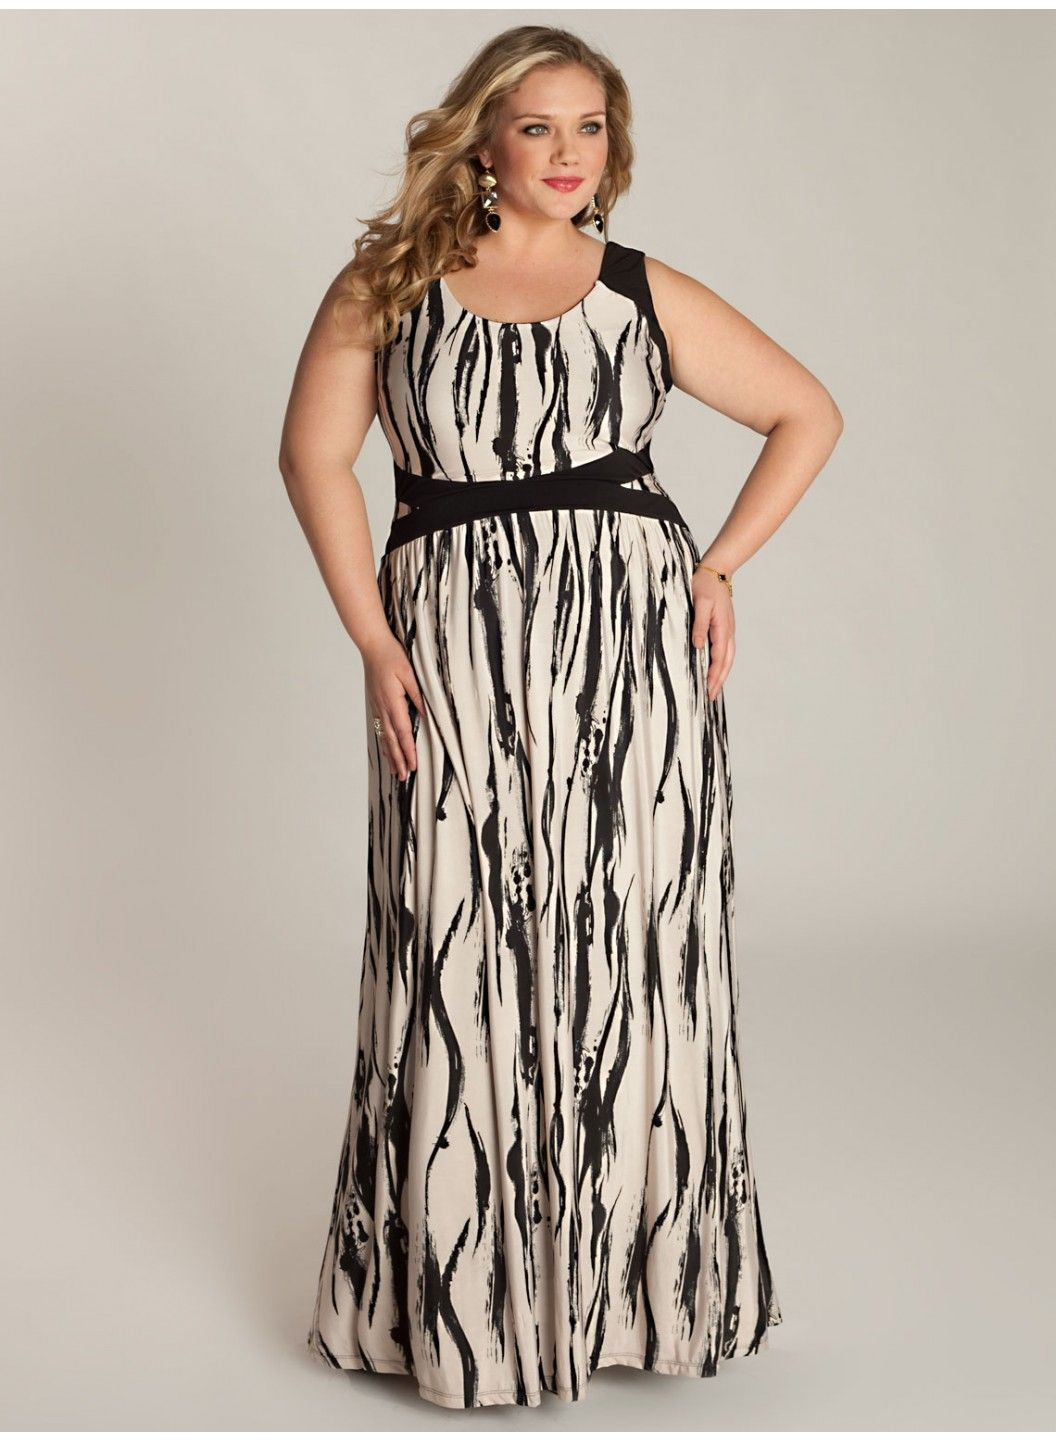 target maxi dresses plus size target wedding dresses Target maxi dresses plus size Novella Plus Size Maxi Dress By Igigi The Ultra Comfortable